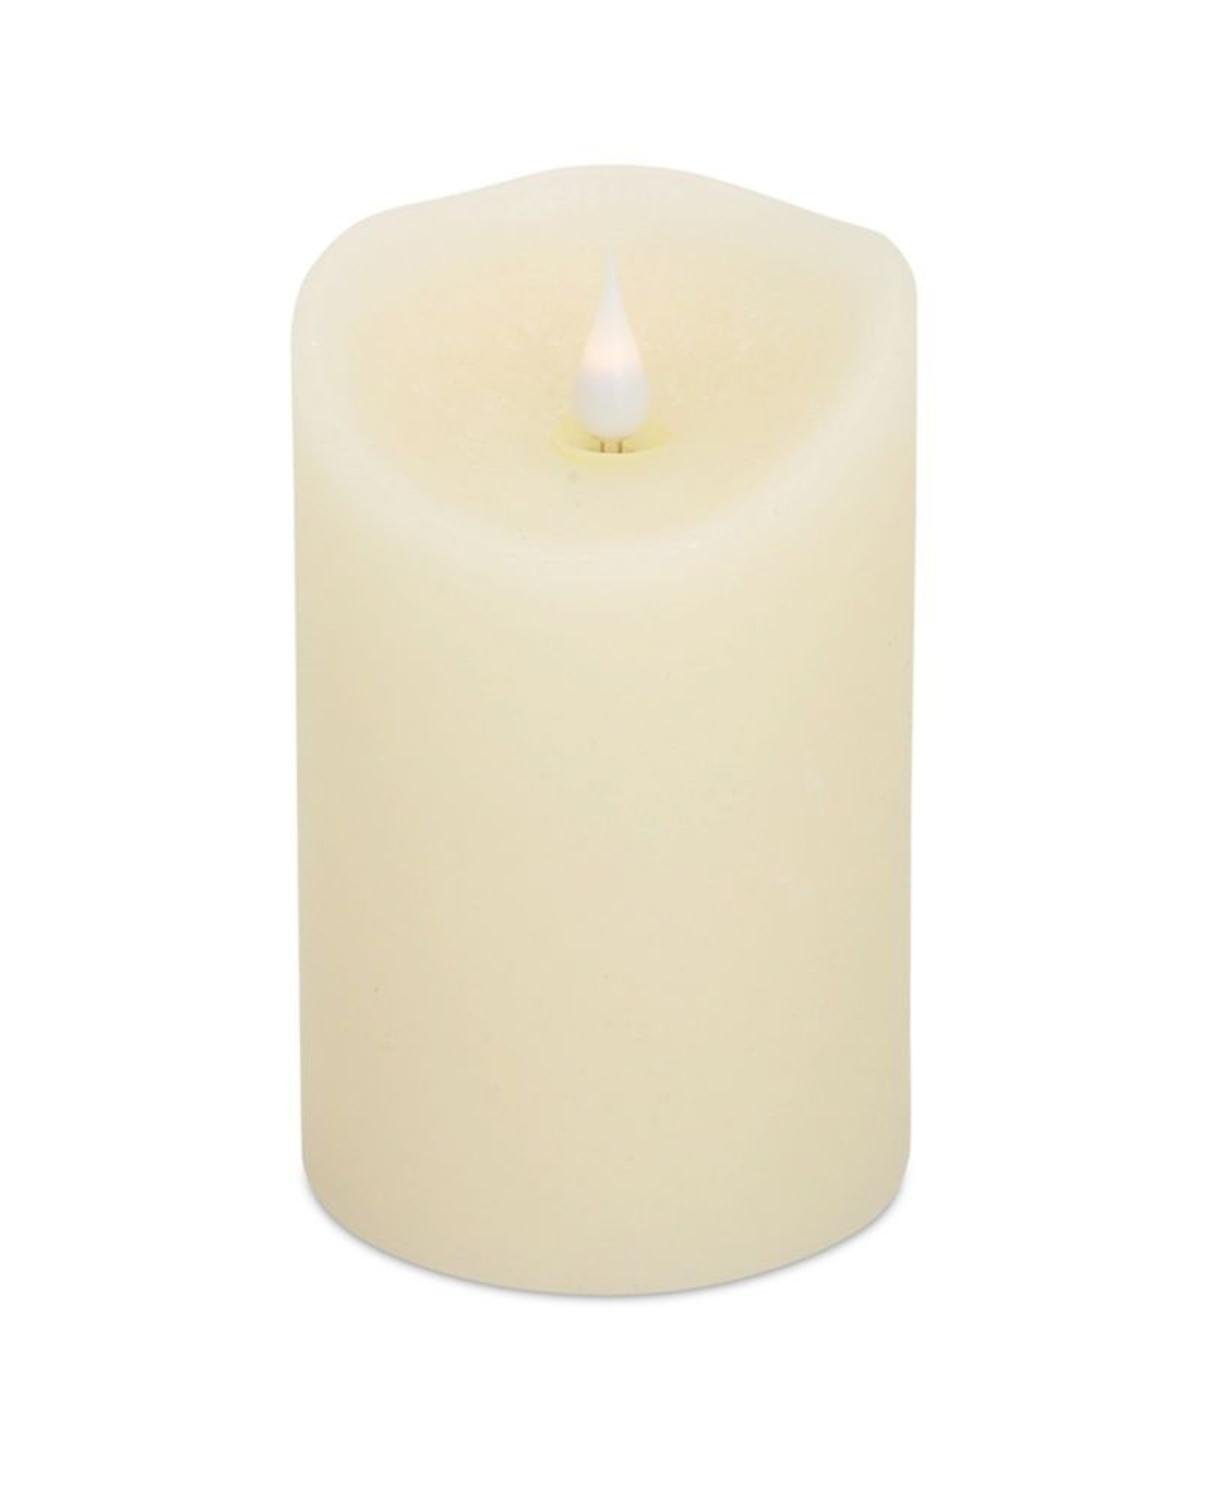 Pack of 4 Decorative Designer Simplux LED Cream Candle with Flame 5.5''